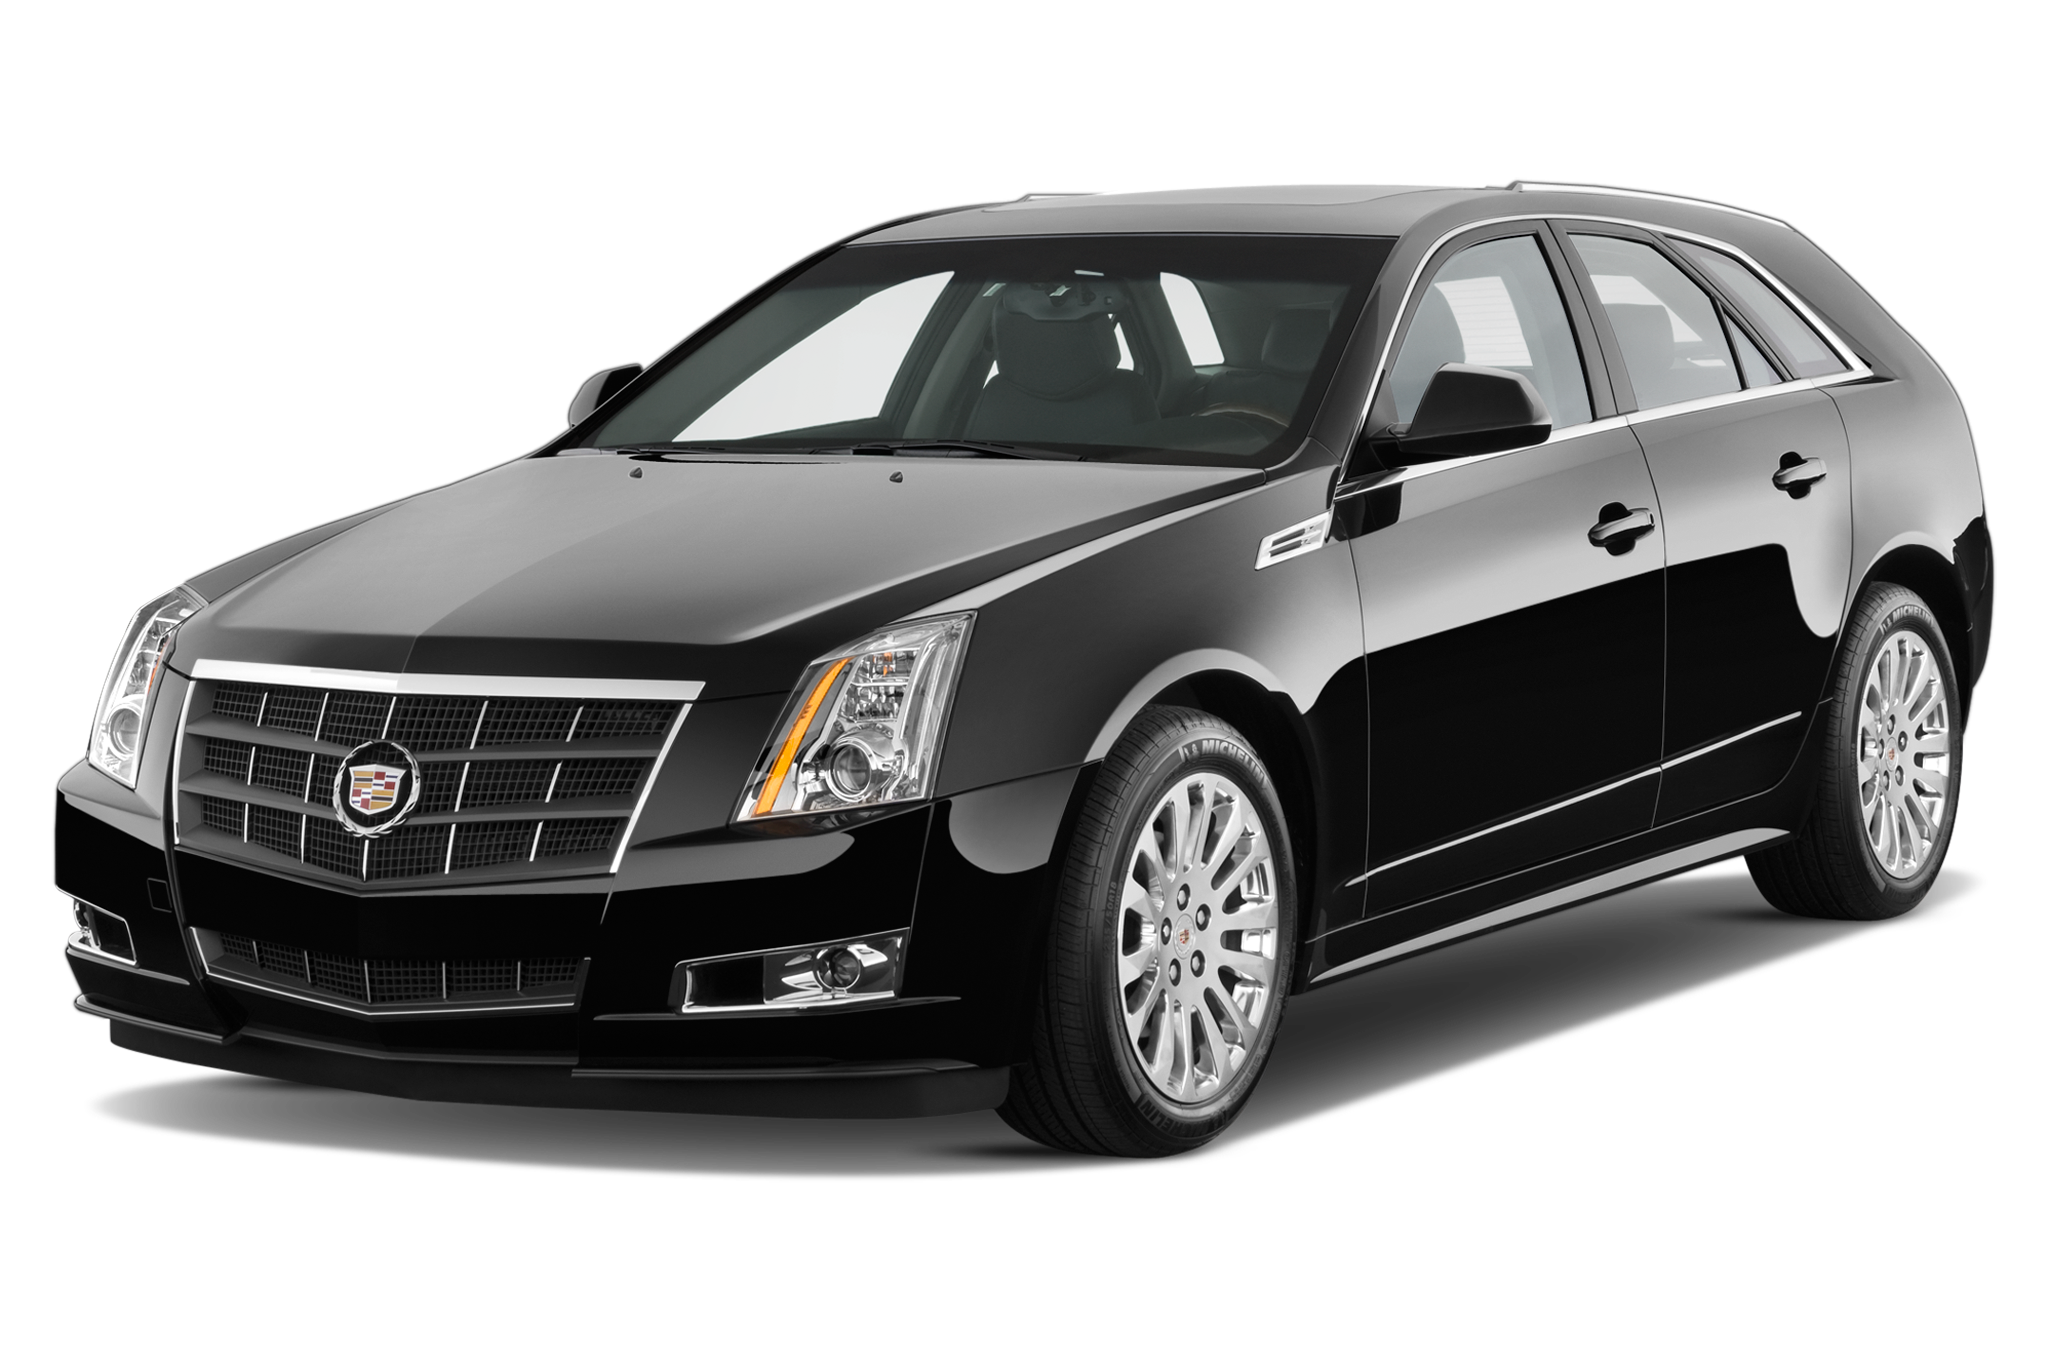 cadillac adds twin turbo v 6 to new cts. Black Bedroom Furniture Sets. Home Design Ideas